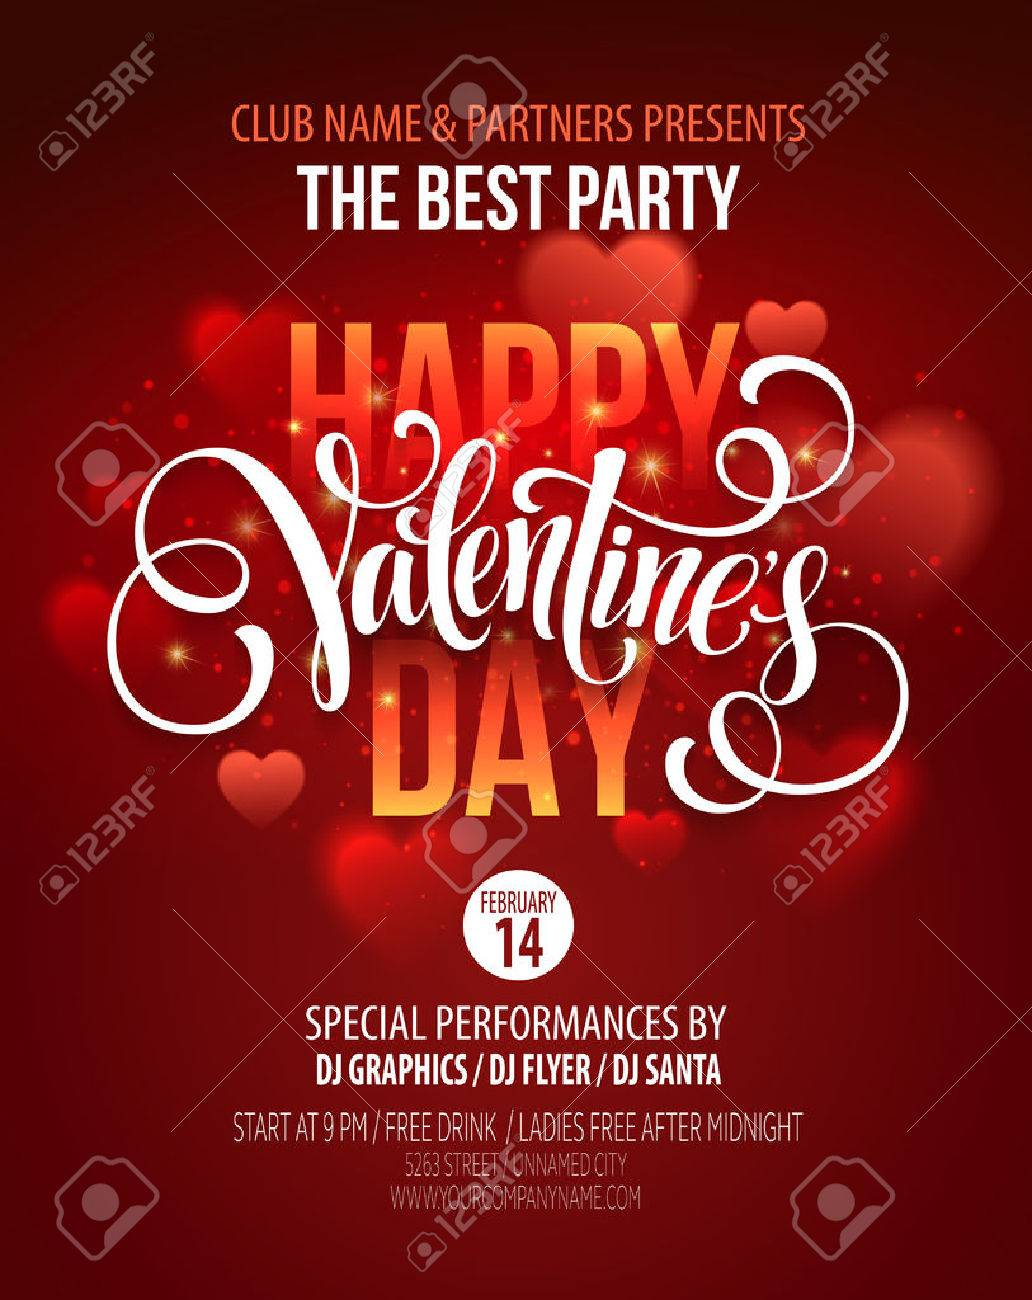 Valentines Day Party Poster Design. - 50353553